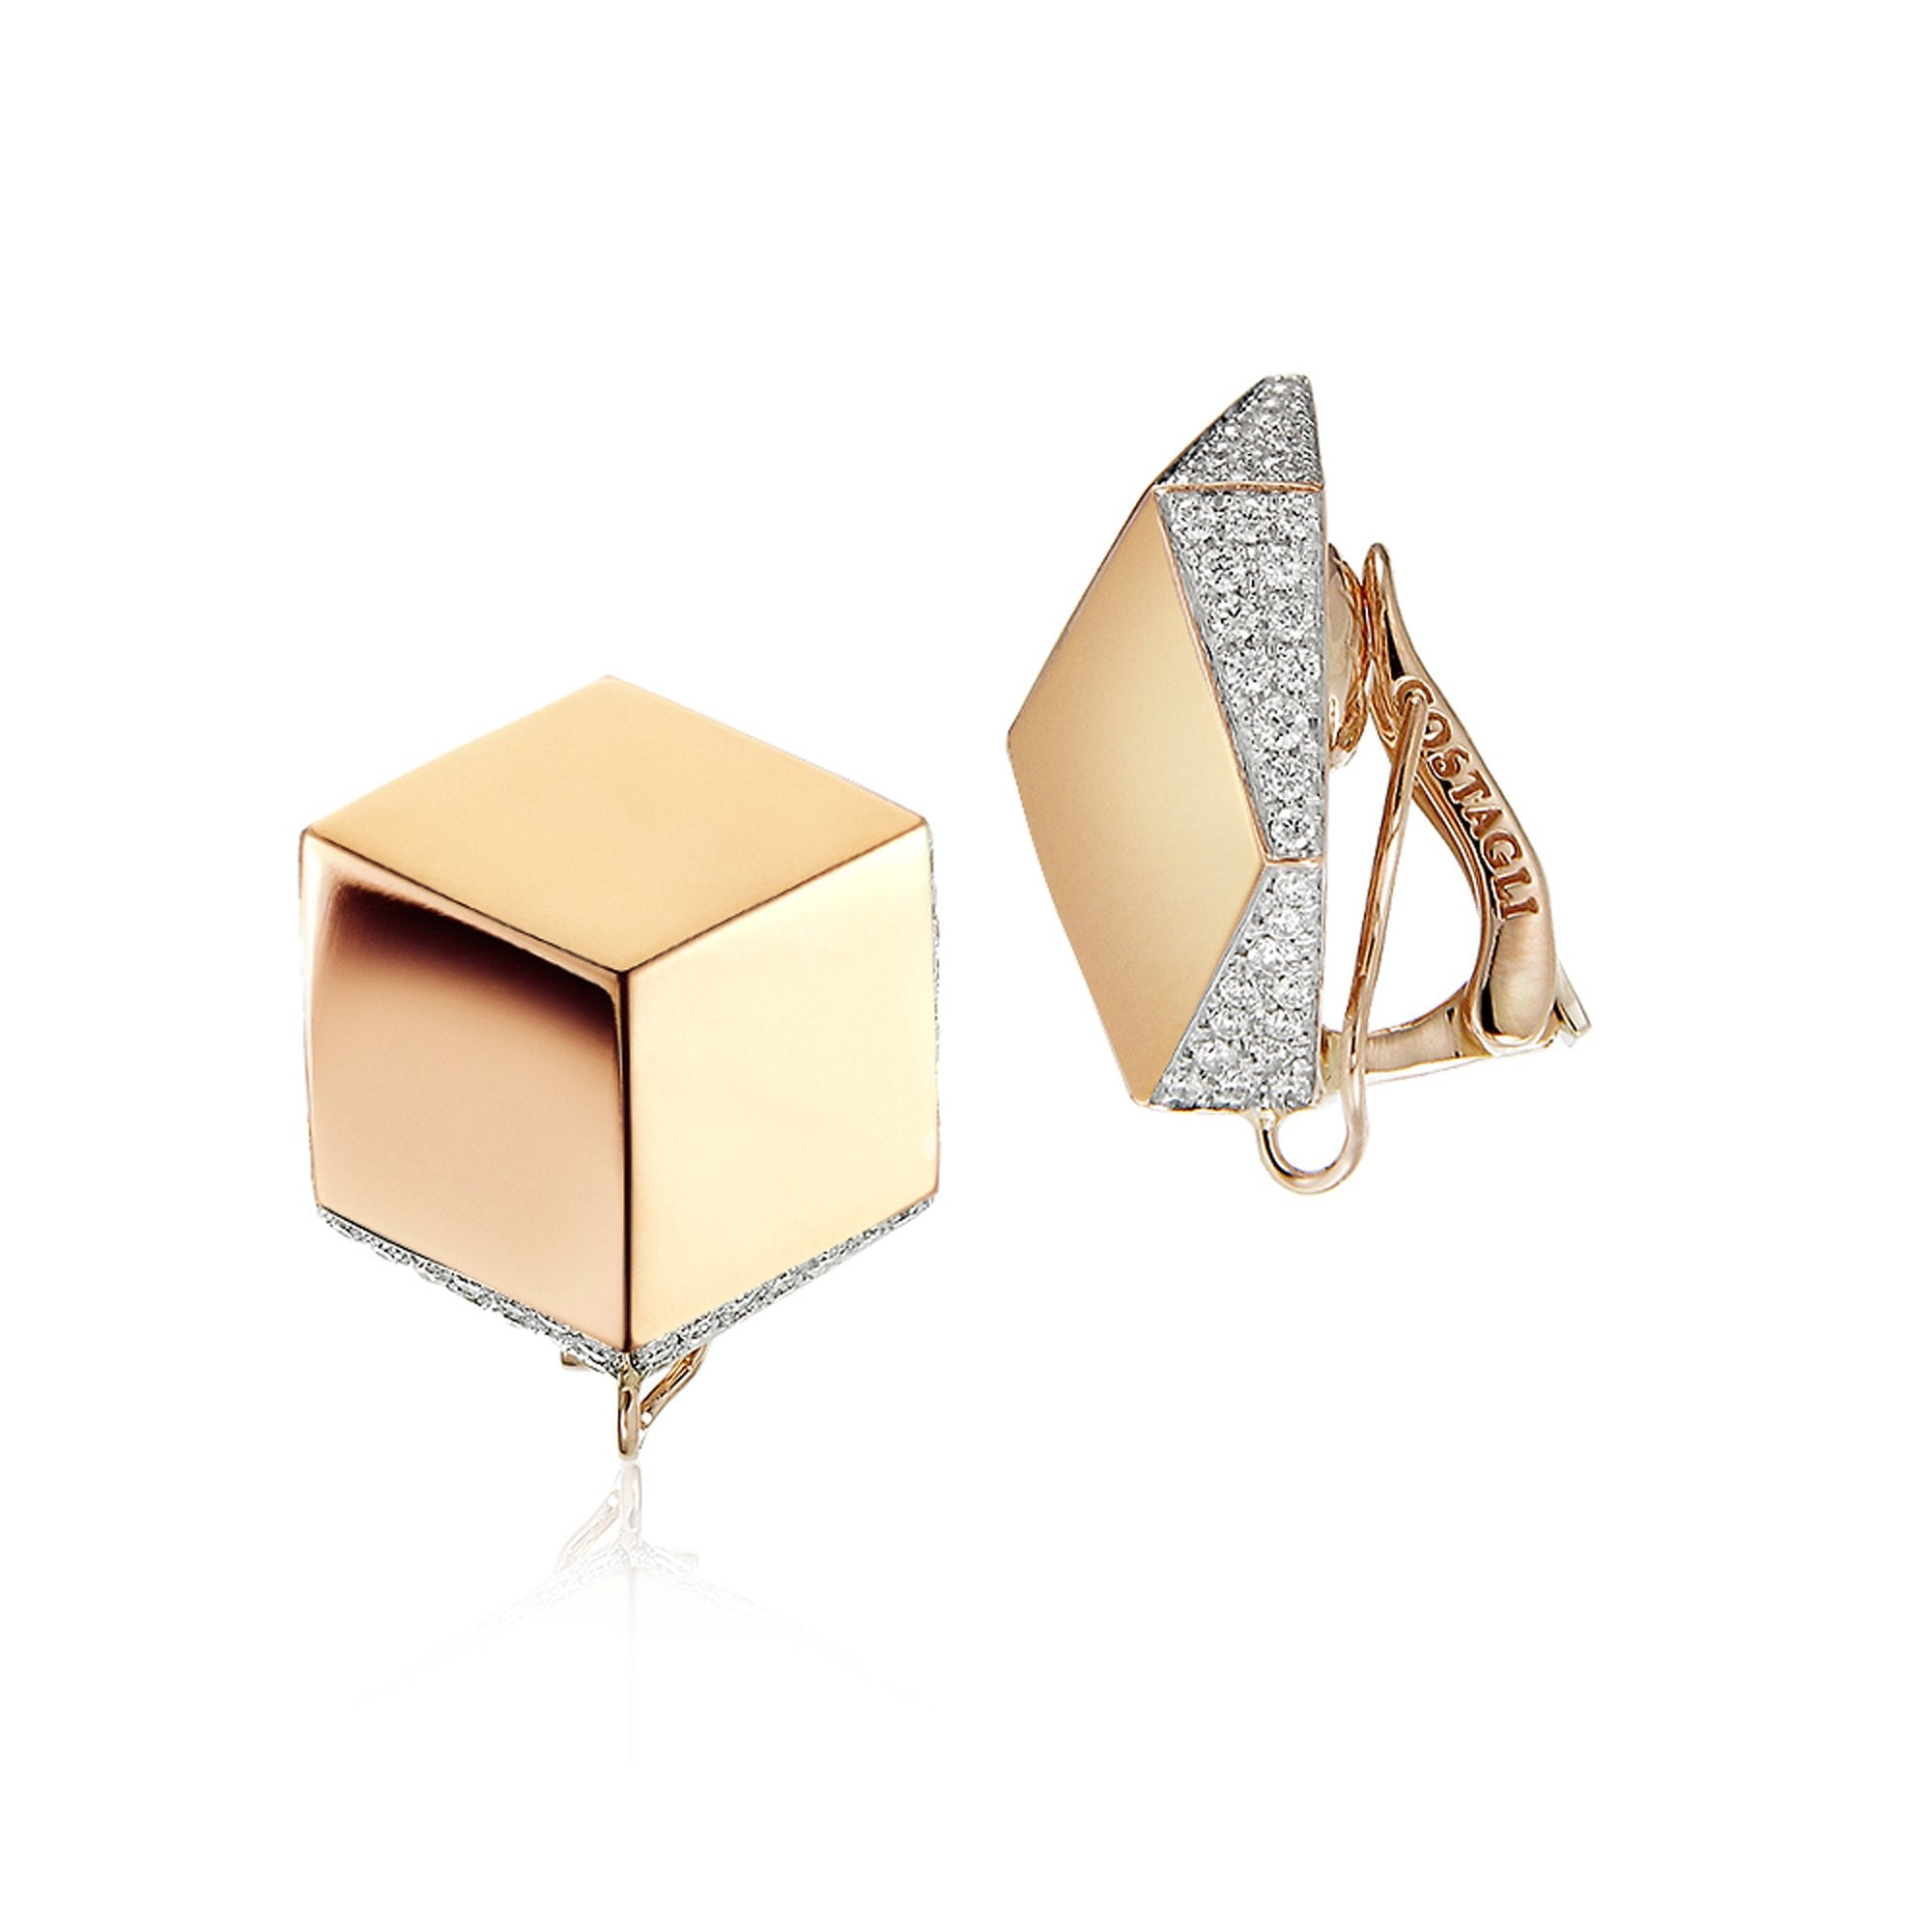 Rose Gold and Diamond 'Brillante®' Clip Earrings - Paolo Costagli - 1